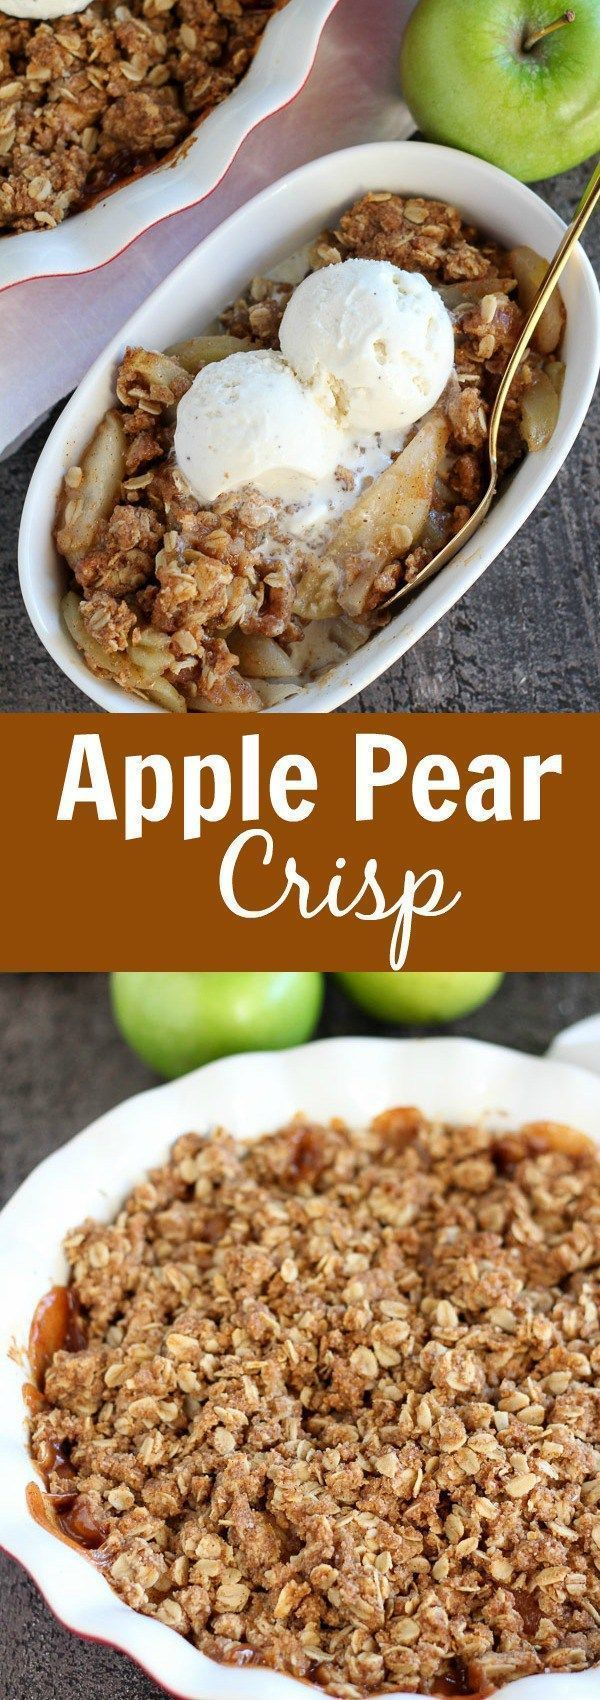 Apple Pear Crisp - Tender apples and pears baked with a brown sugar oat topping. Serve warm for the